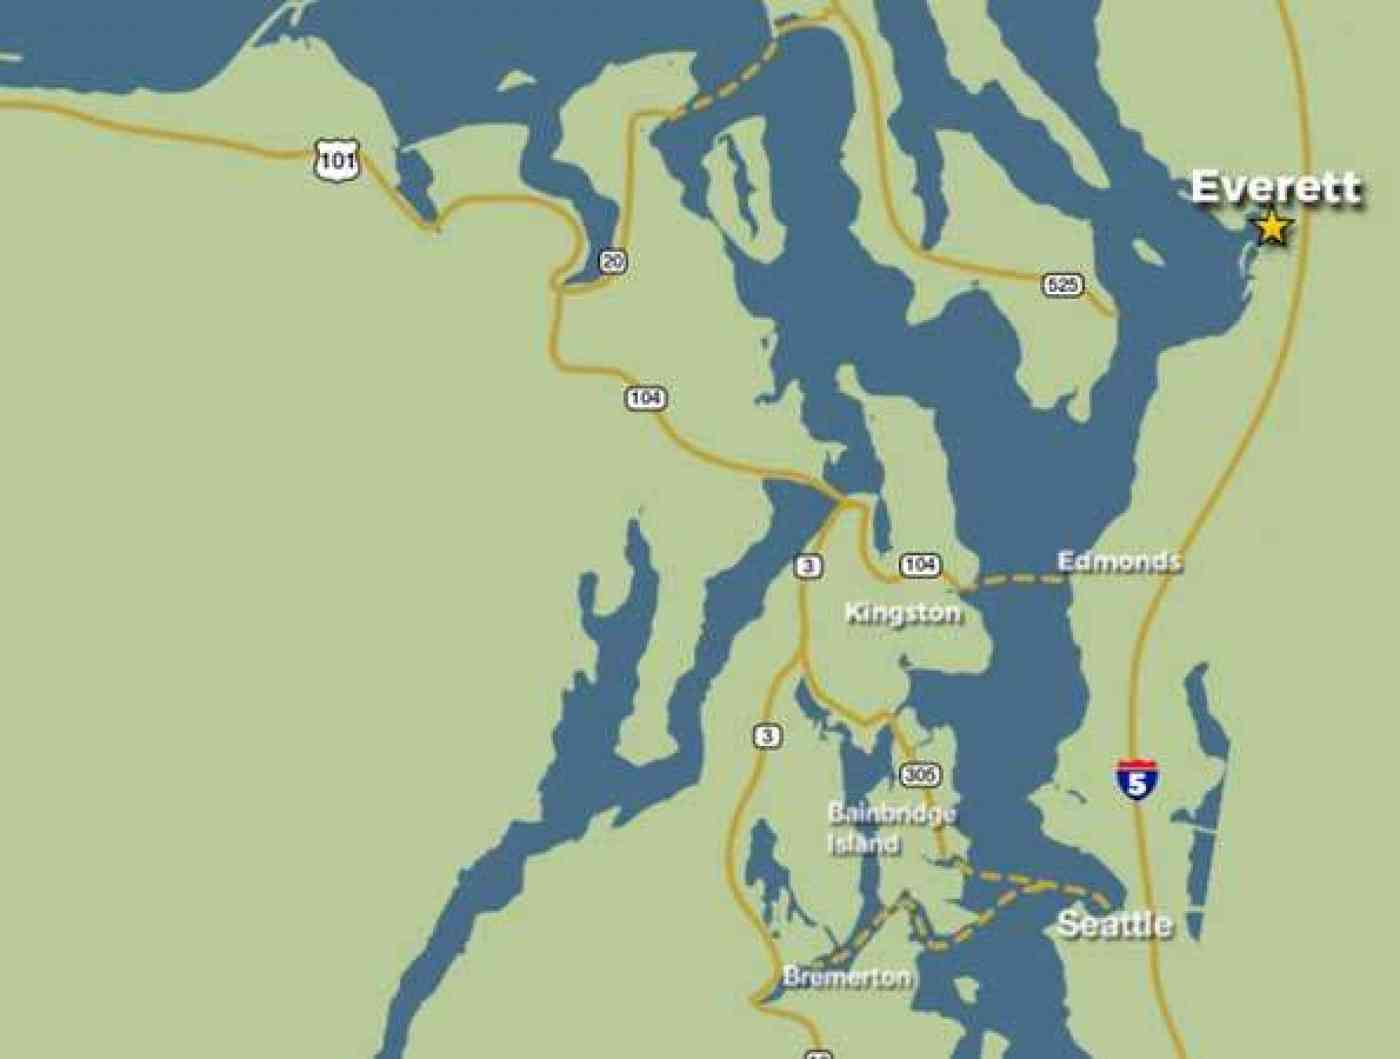 Everett Map